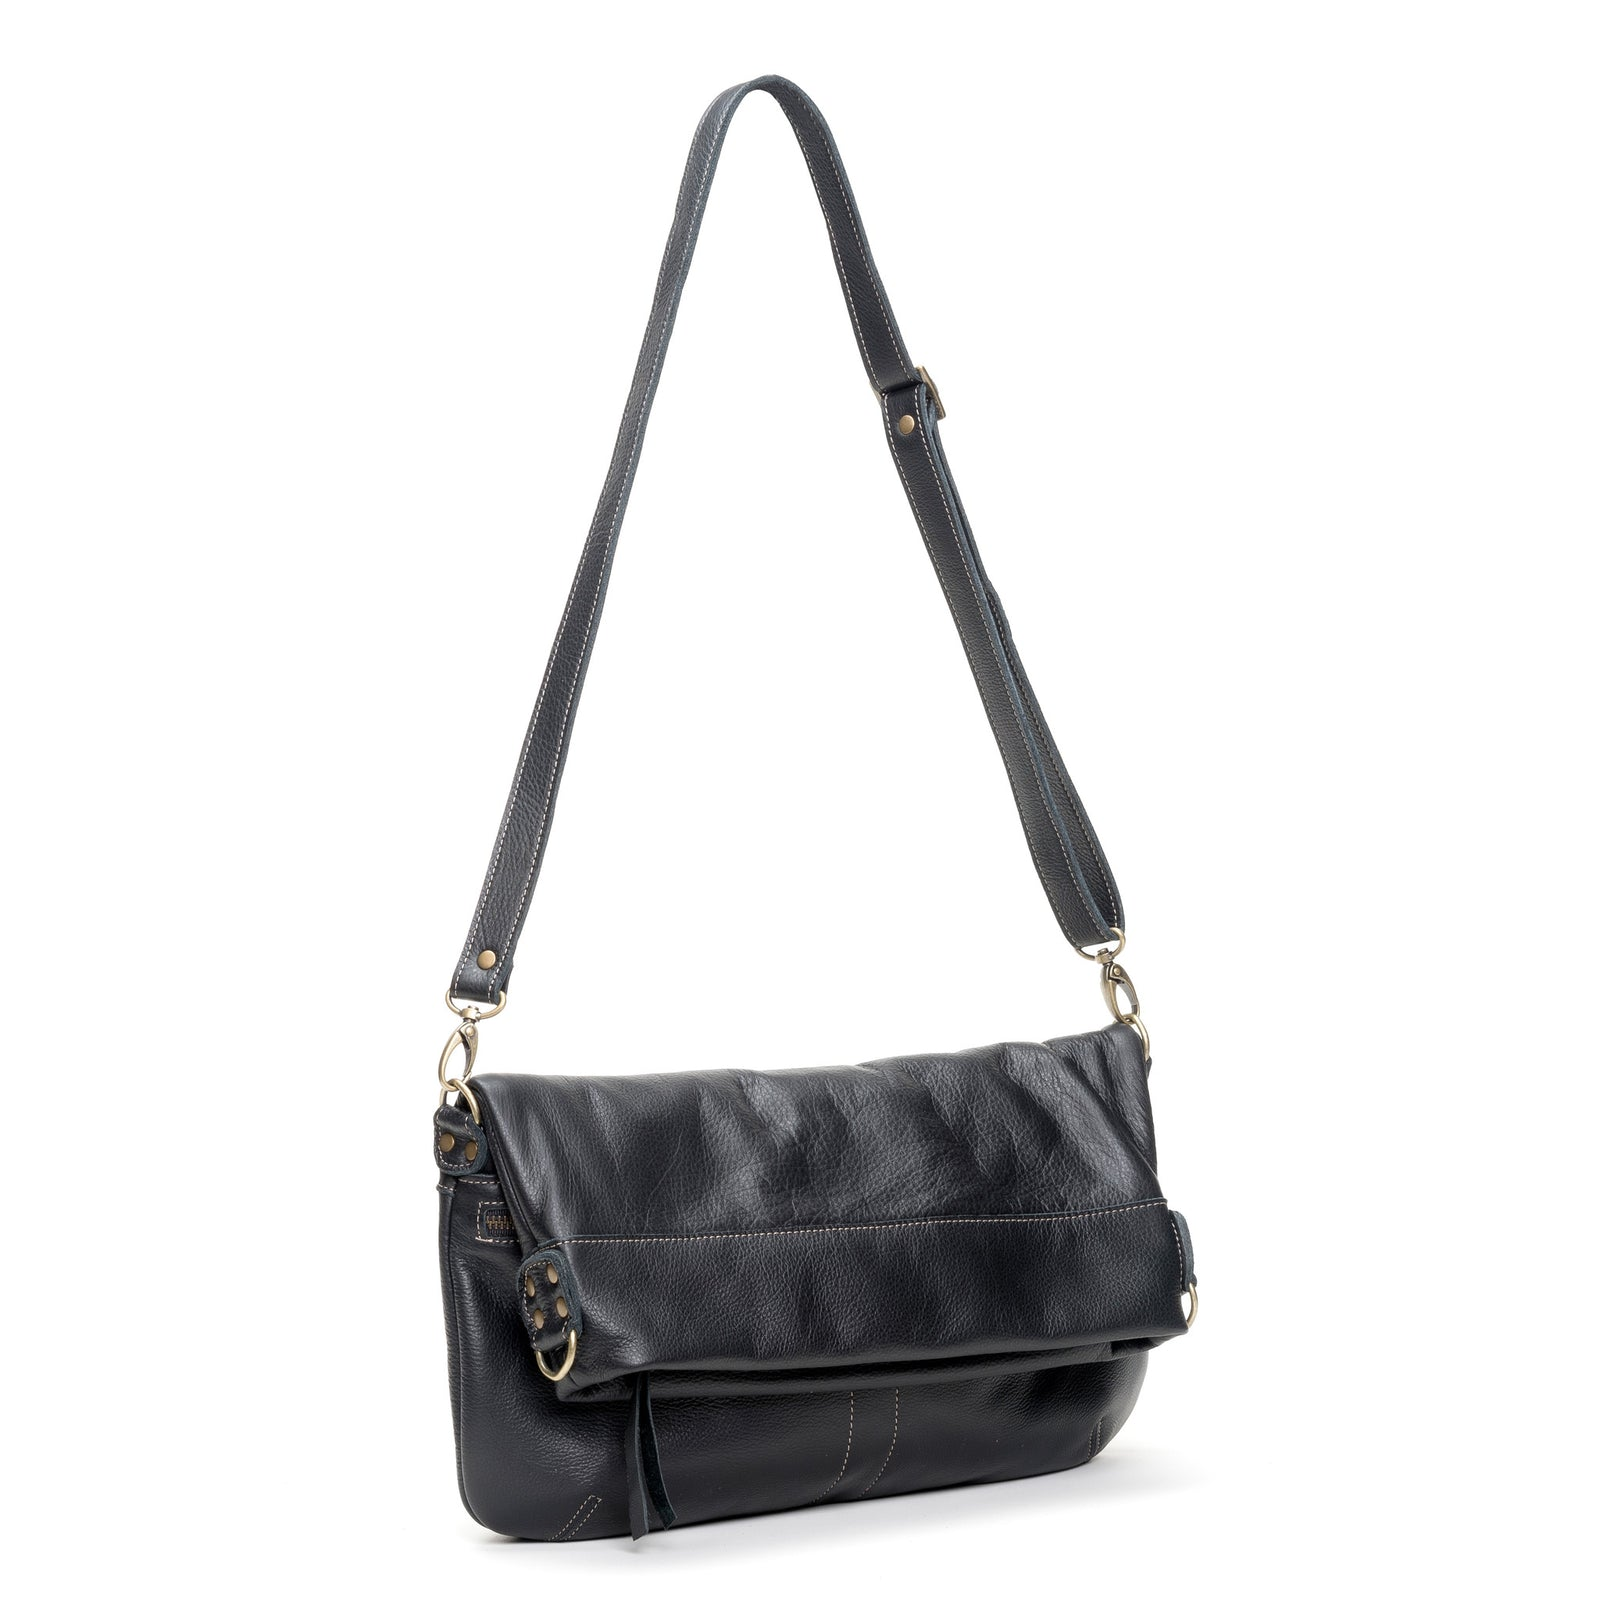 Lauren Crossbody - Caviar - Brynn Capella, Large Crossbody